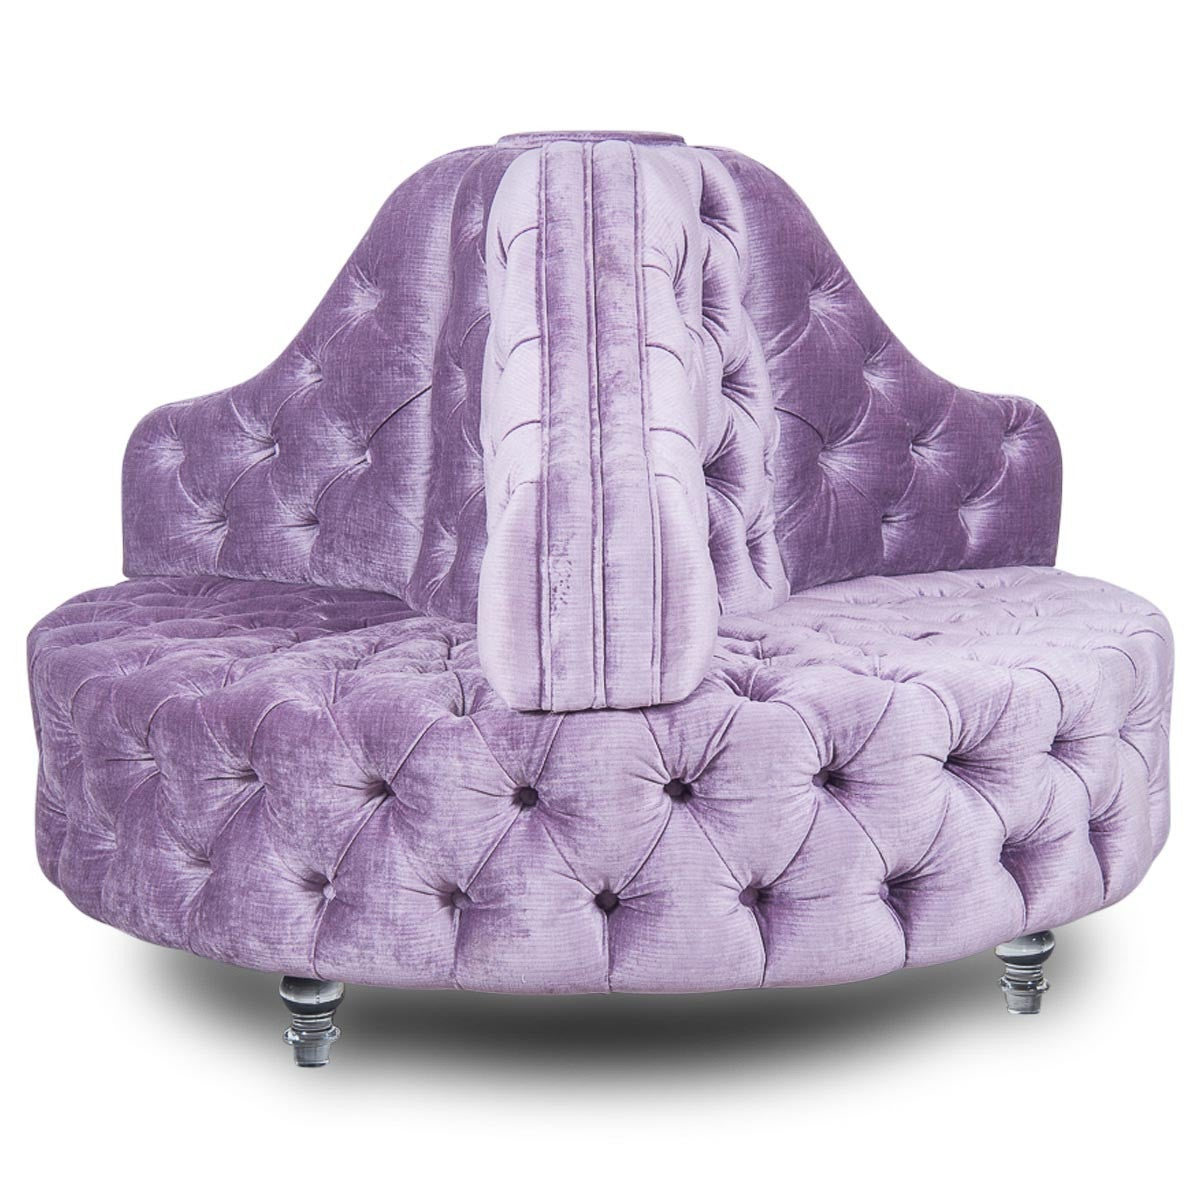 La Belle Tuffet in Bristol Grape - ModShop1.com